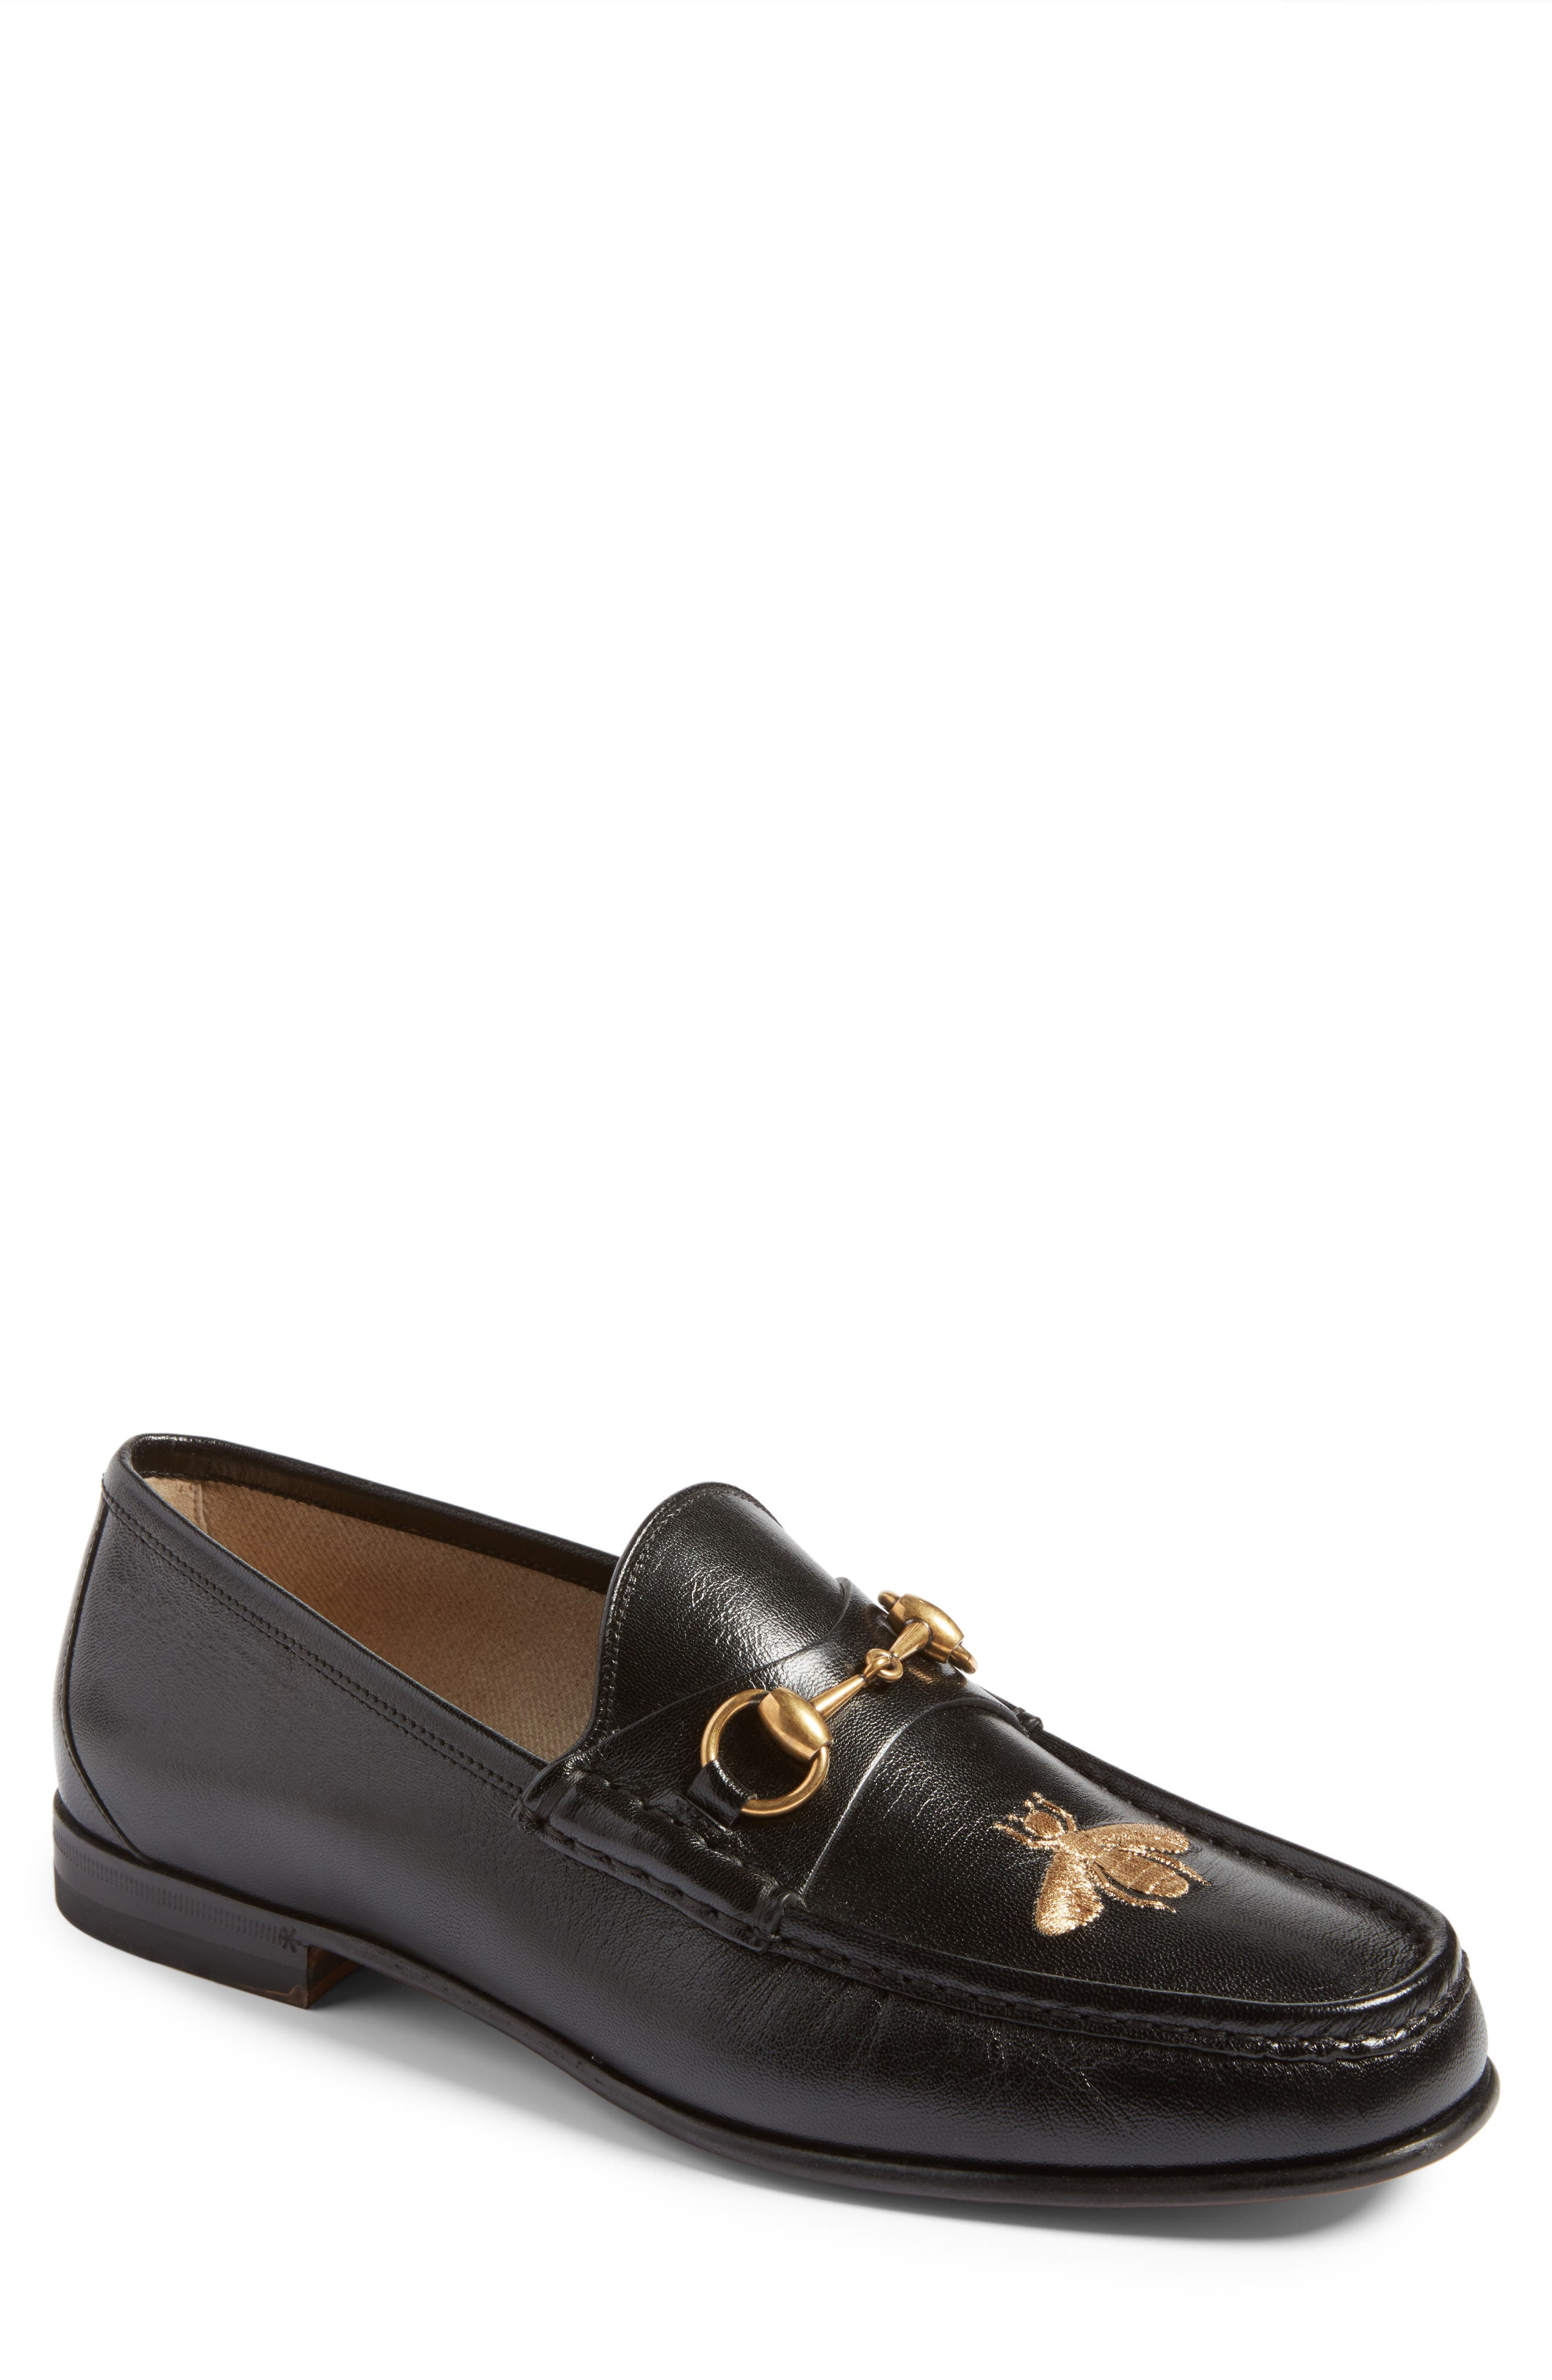 Main Image - Gucci Roos - Bee Loafer (Men)